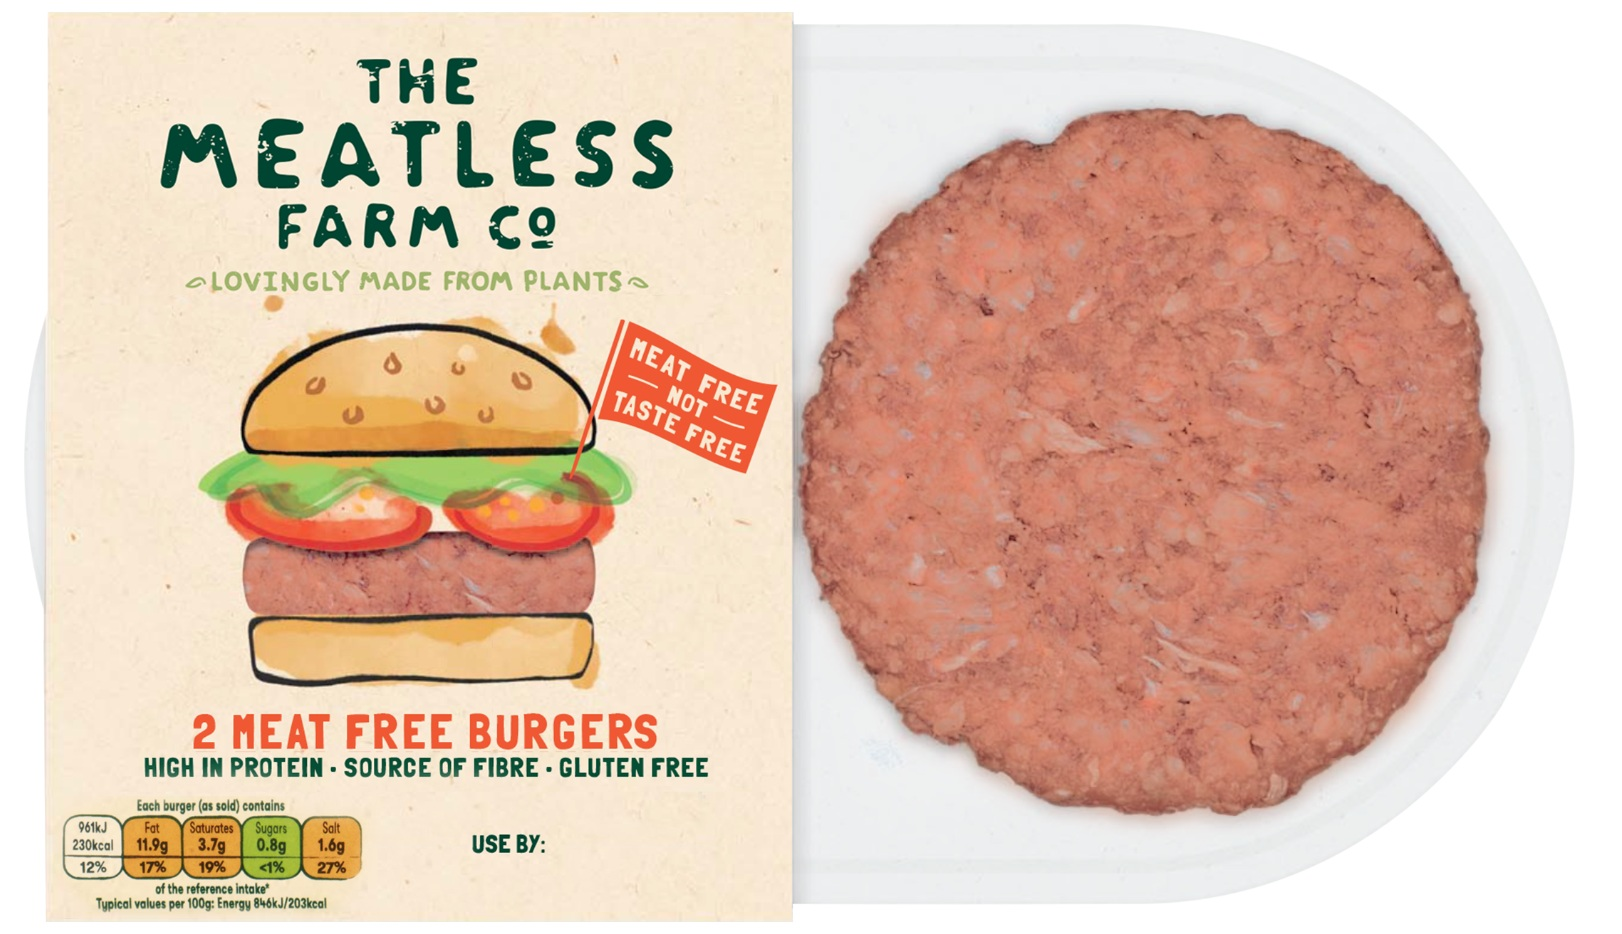 Vegan burgers from The Meatless Farm Co